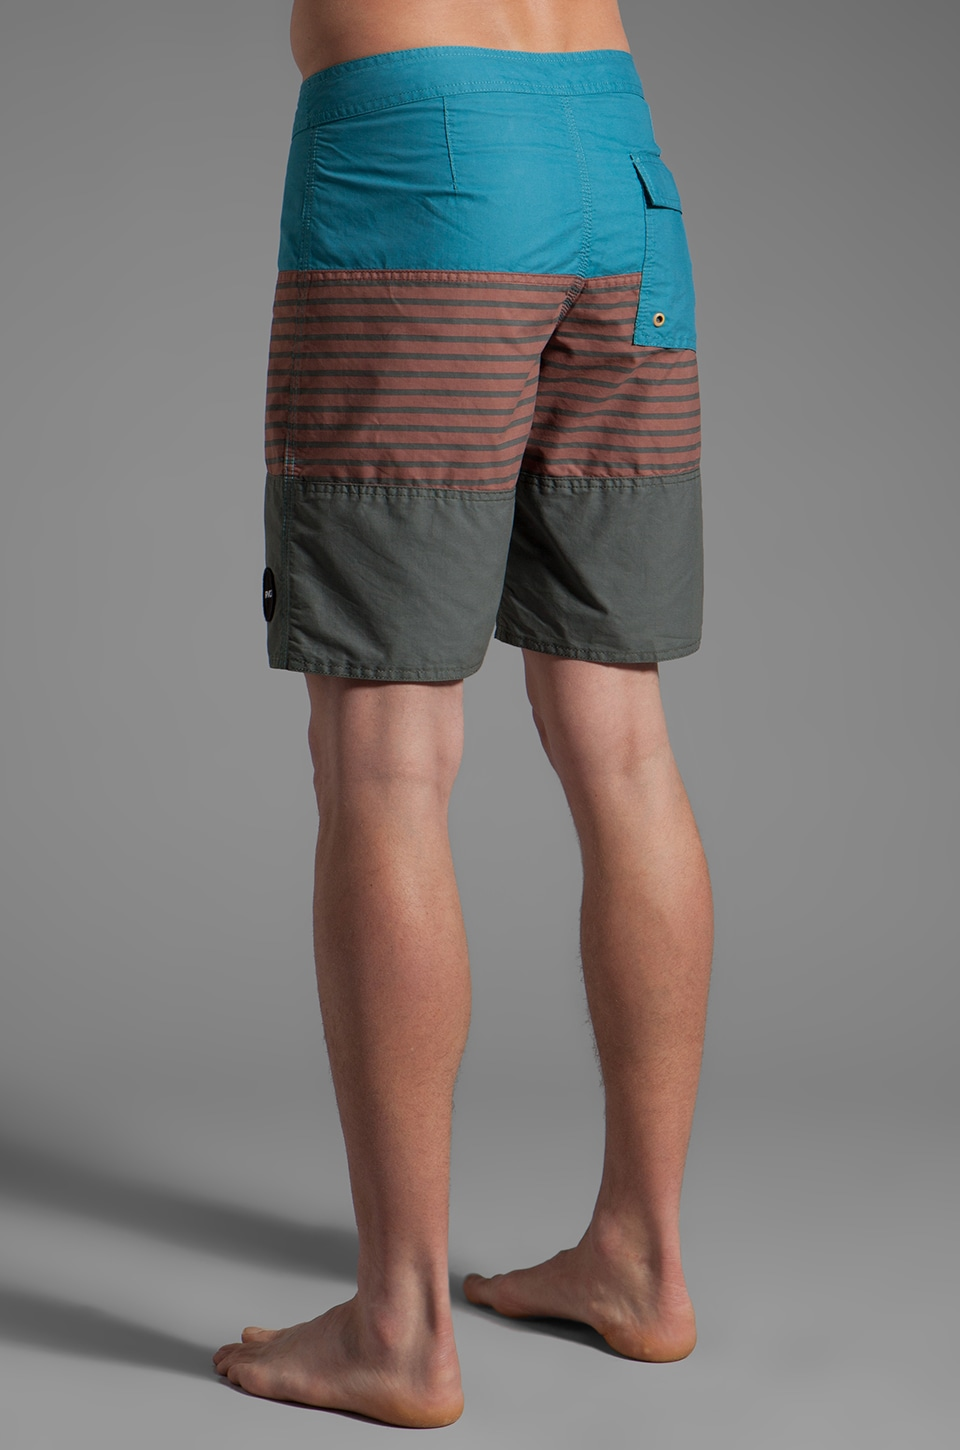 RVCA Layer Boardshort in Henna/Ocean Depth